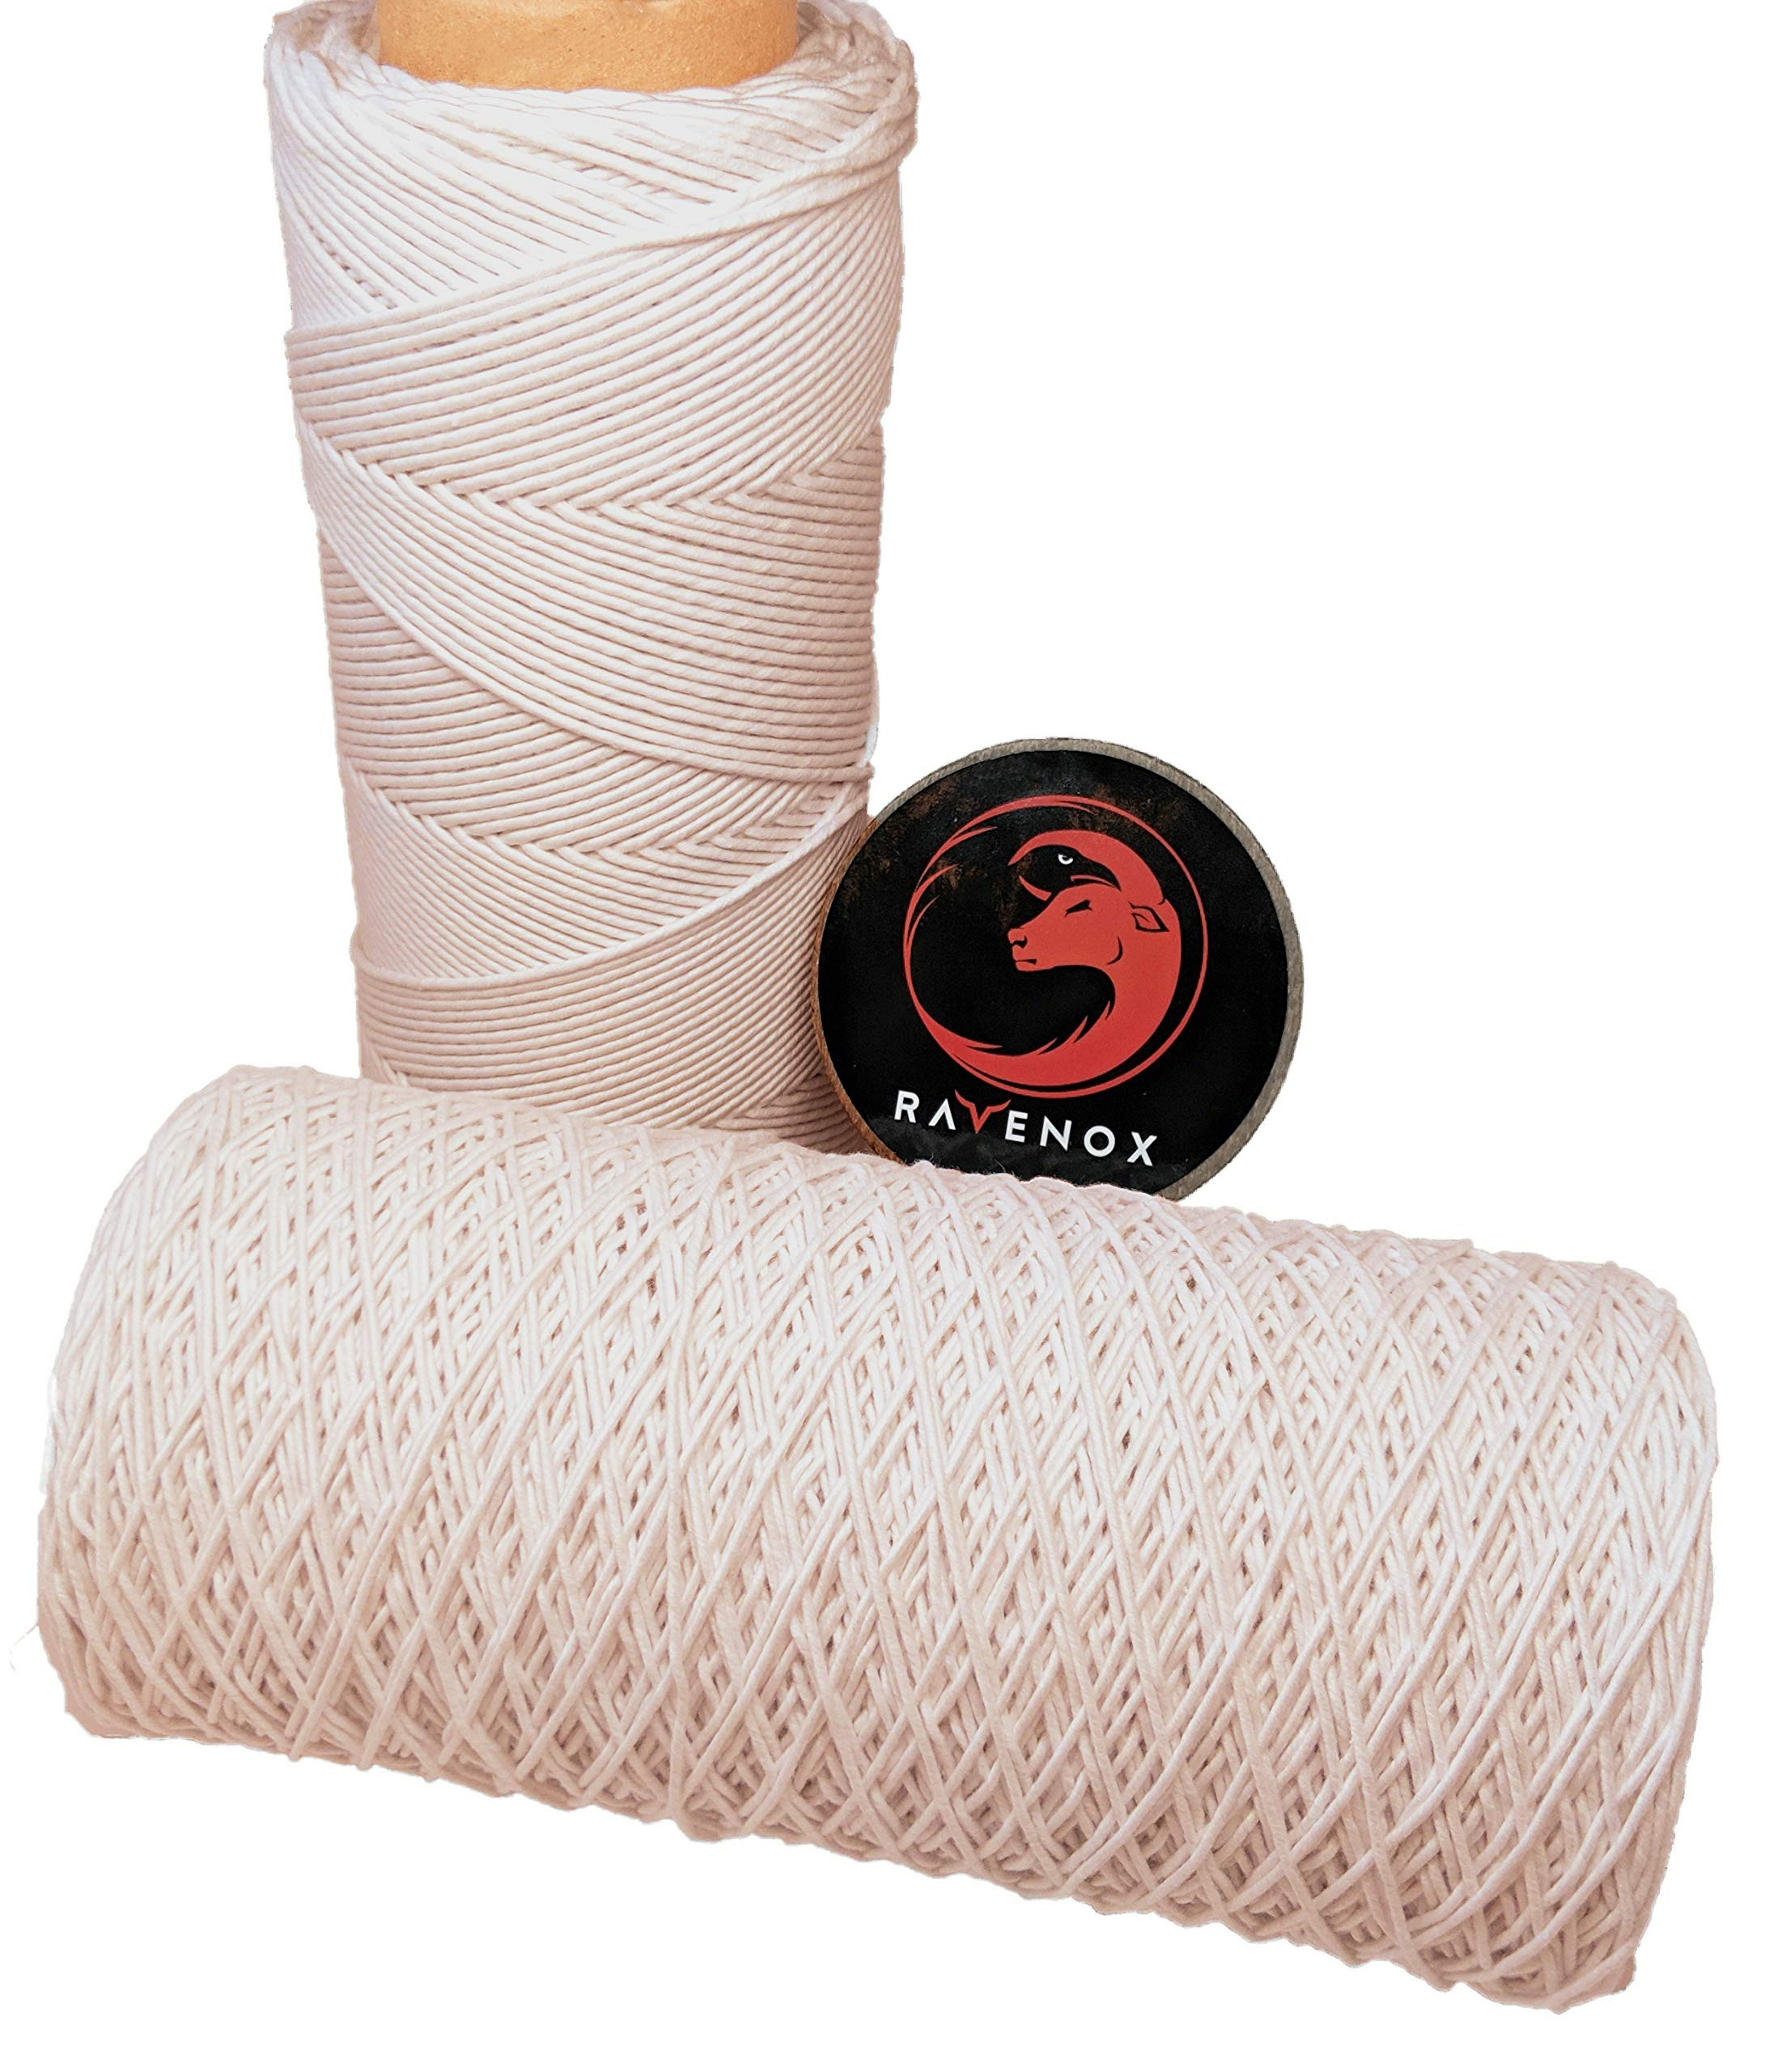 Ravenox Cotton Macrame Cord | Made in The USA | 100% Cotton (Natural White)(220 ply - 6.8 mm x 1150 ft)| Handmade Twine for DIY Projects, Plant Wall Hangar, Crafts, Decorations, Knitting and Knotting